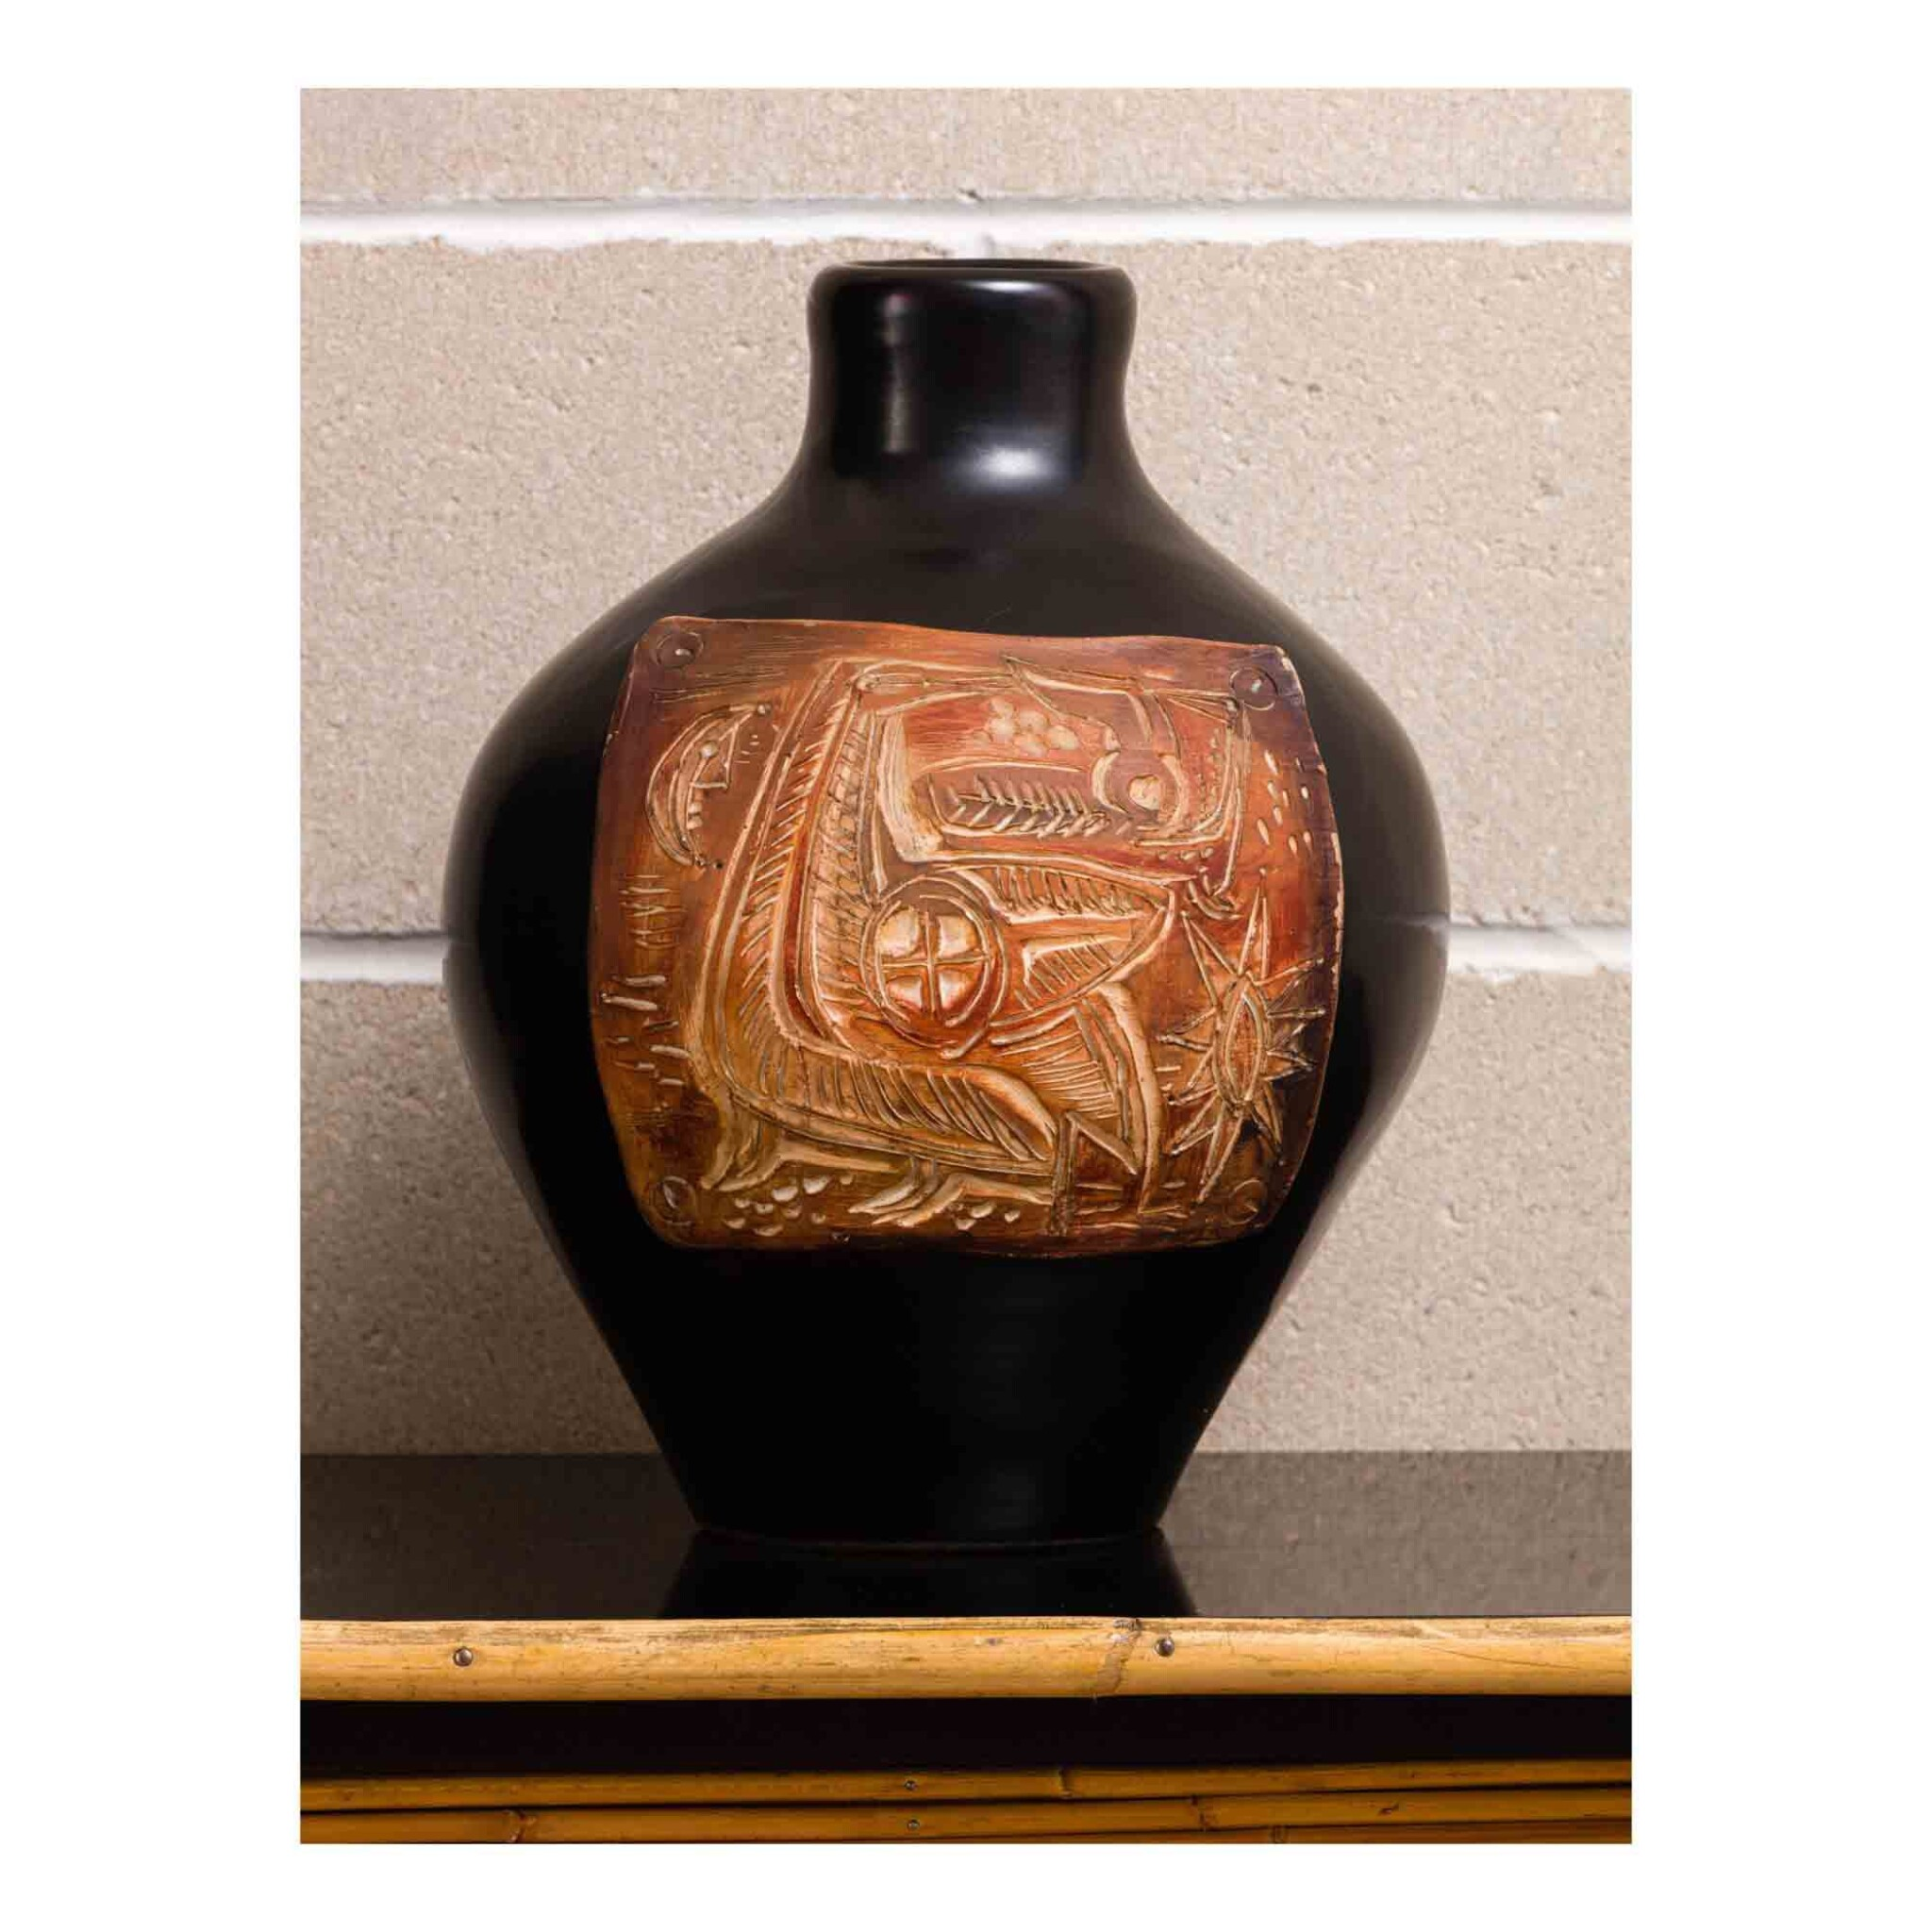 View 1 of Lot 370. Vase.